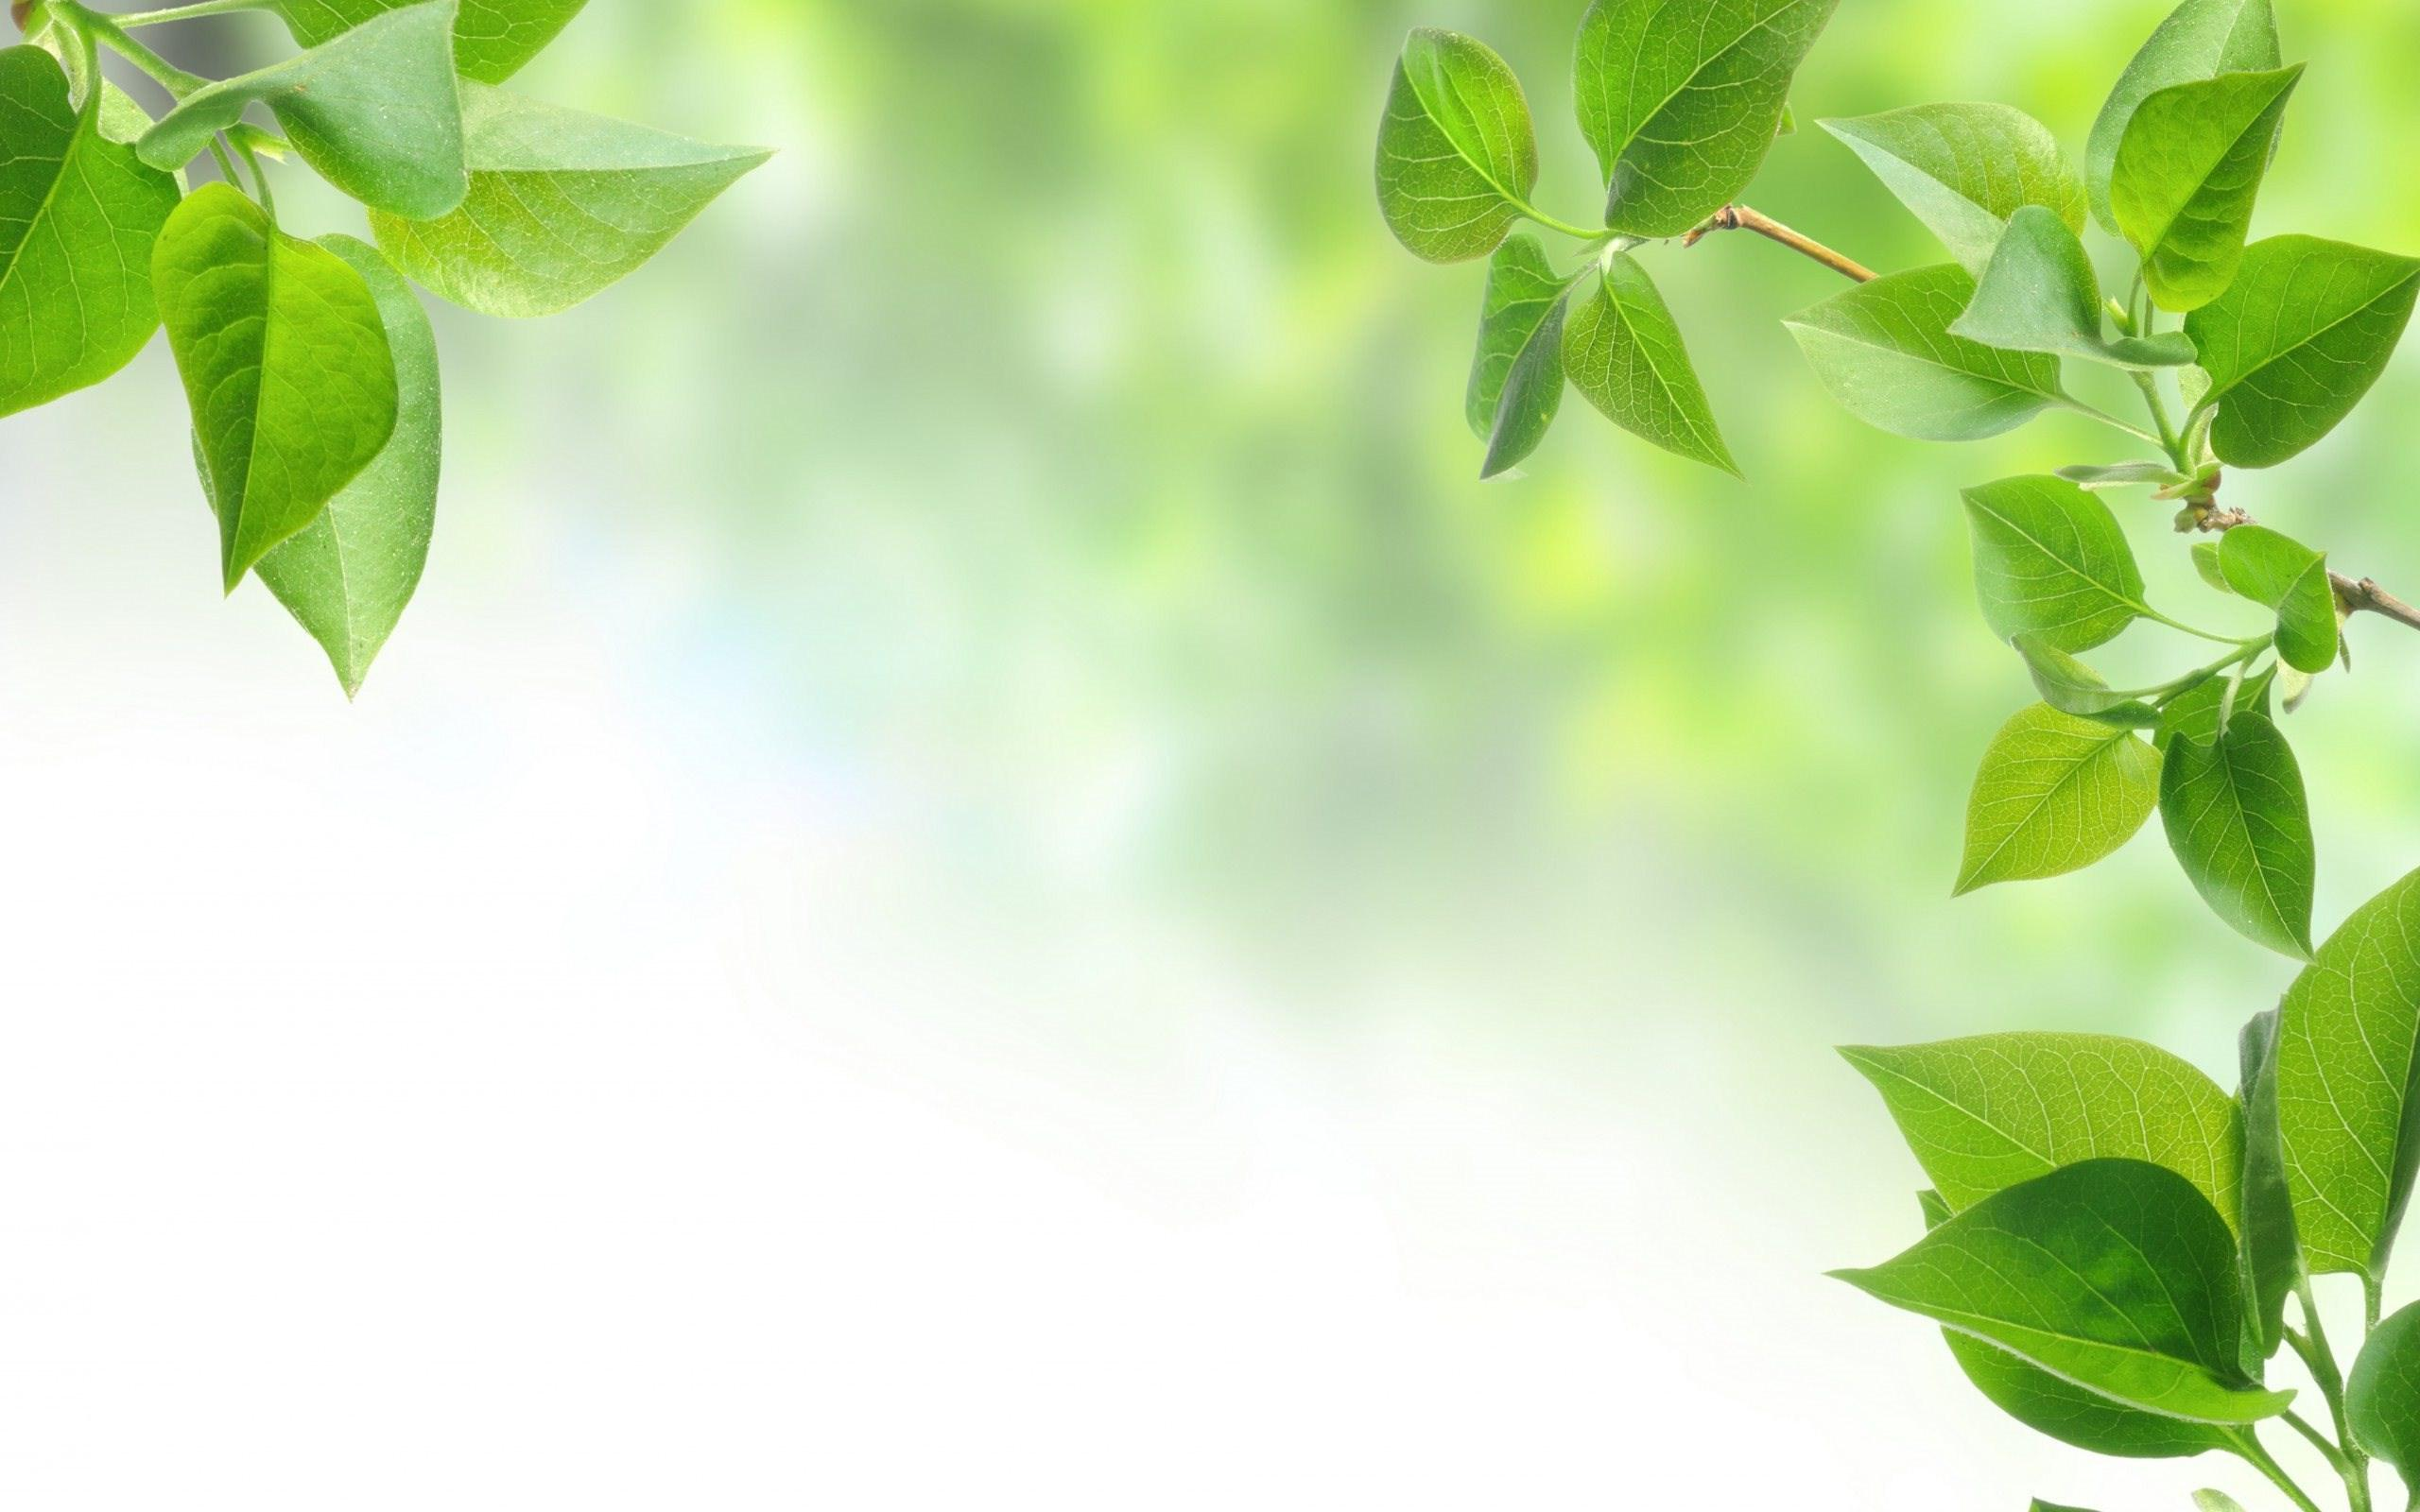 Download: Leaves Background Desktop